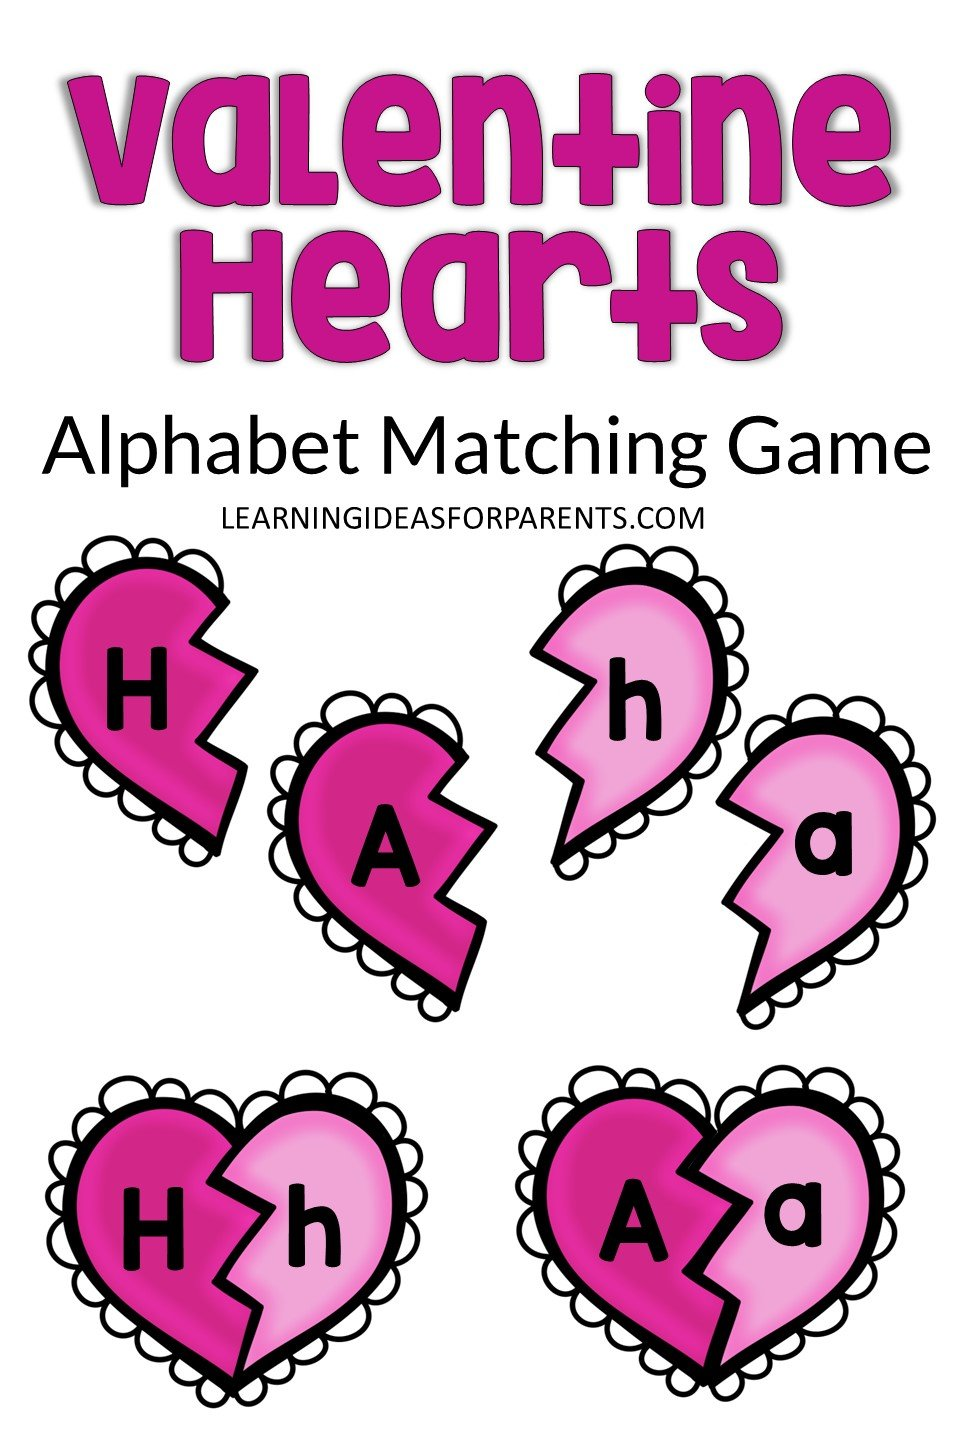 Free printable alphabet matching game with Valentine's Day hearts.